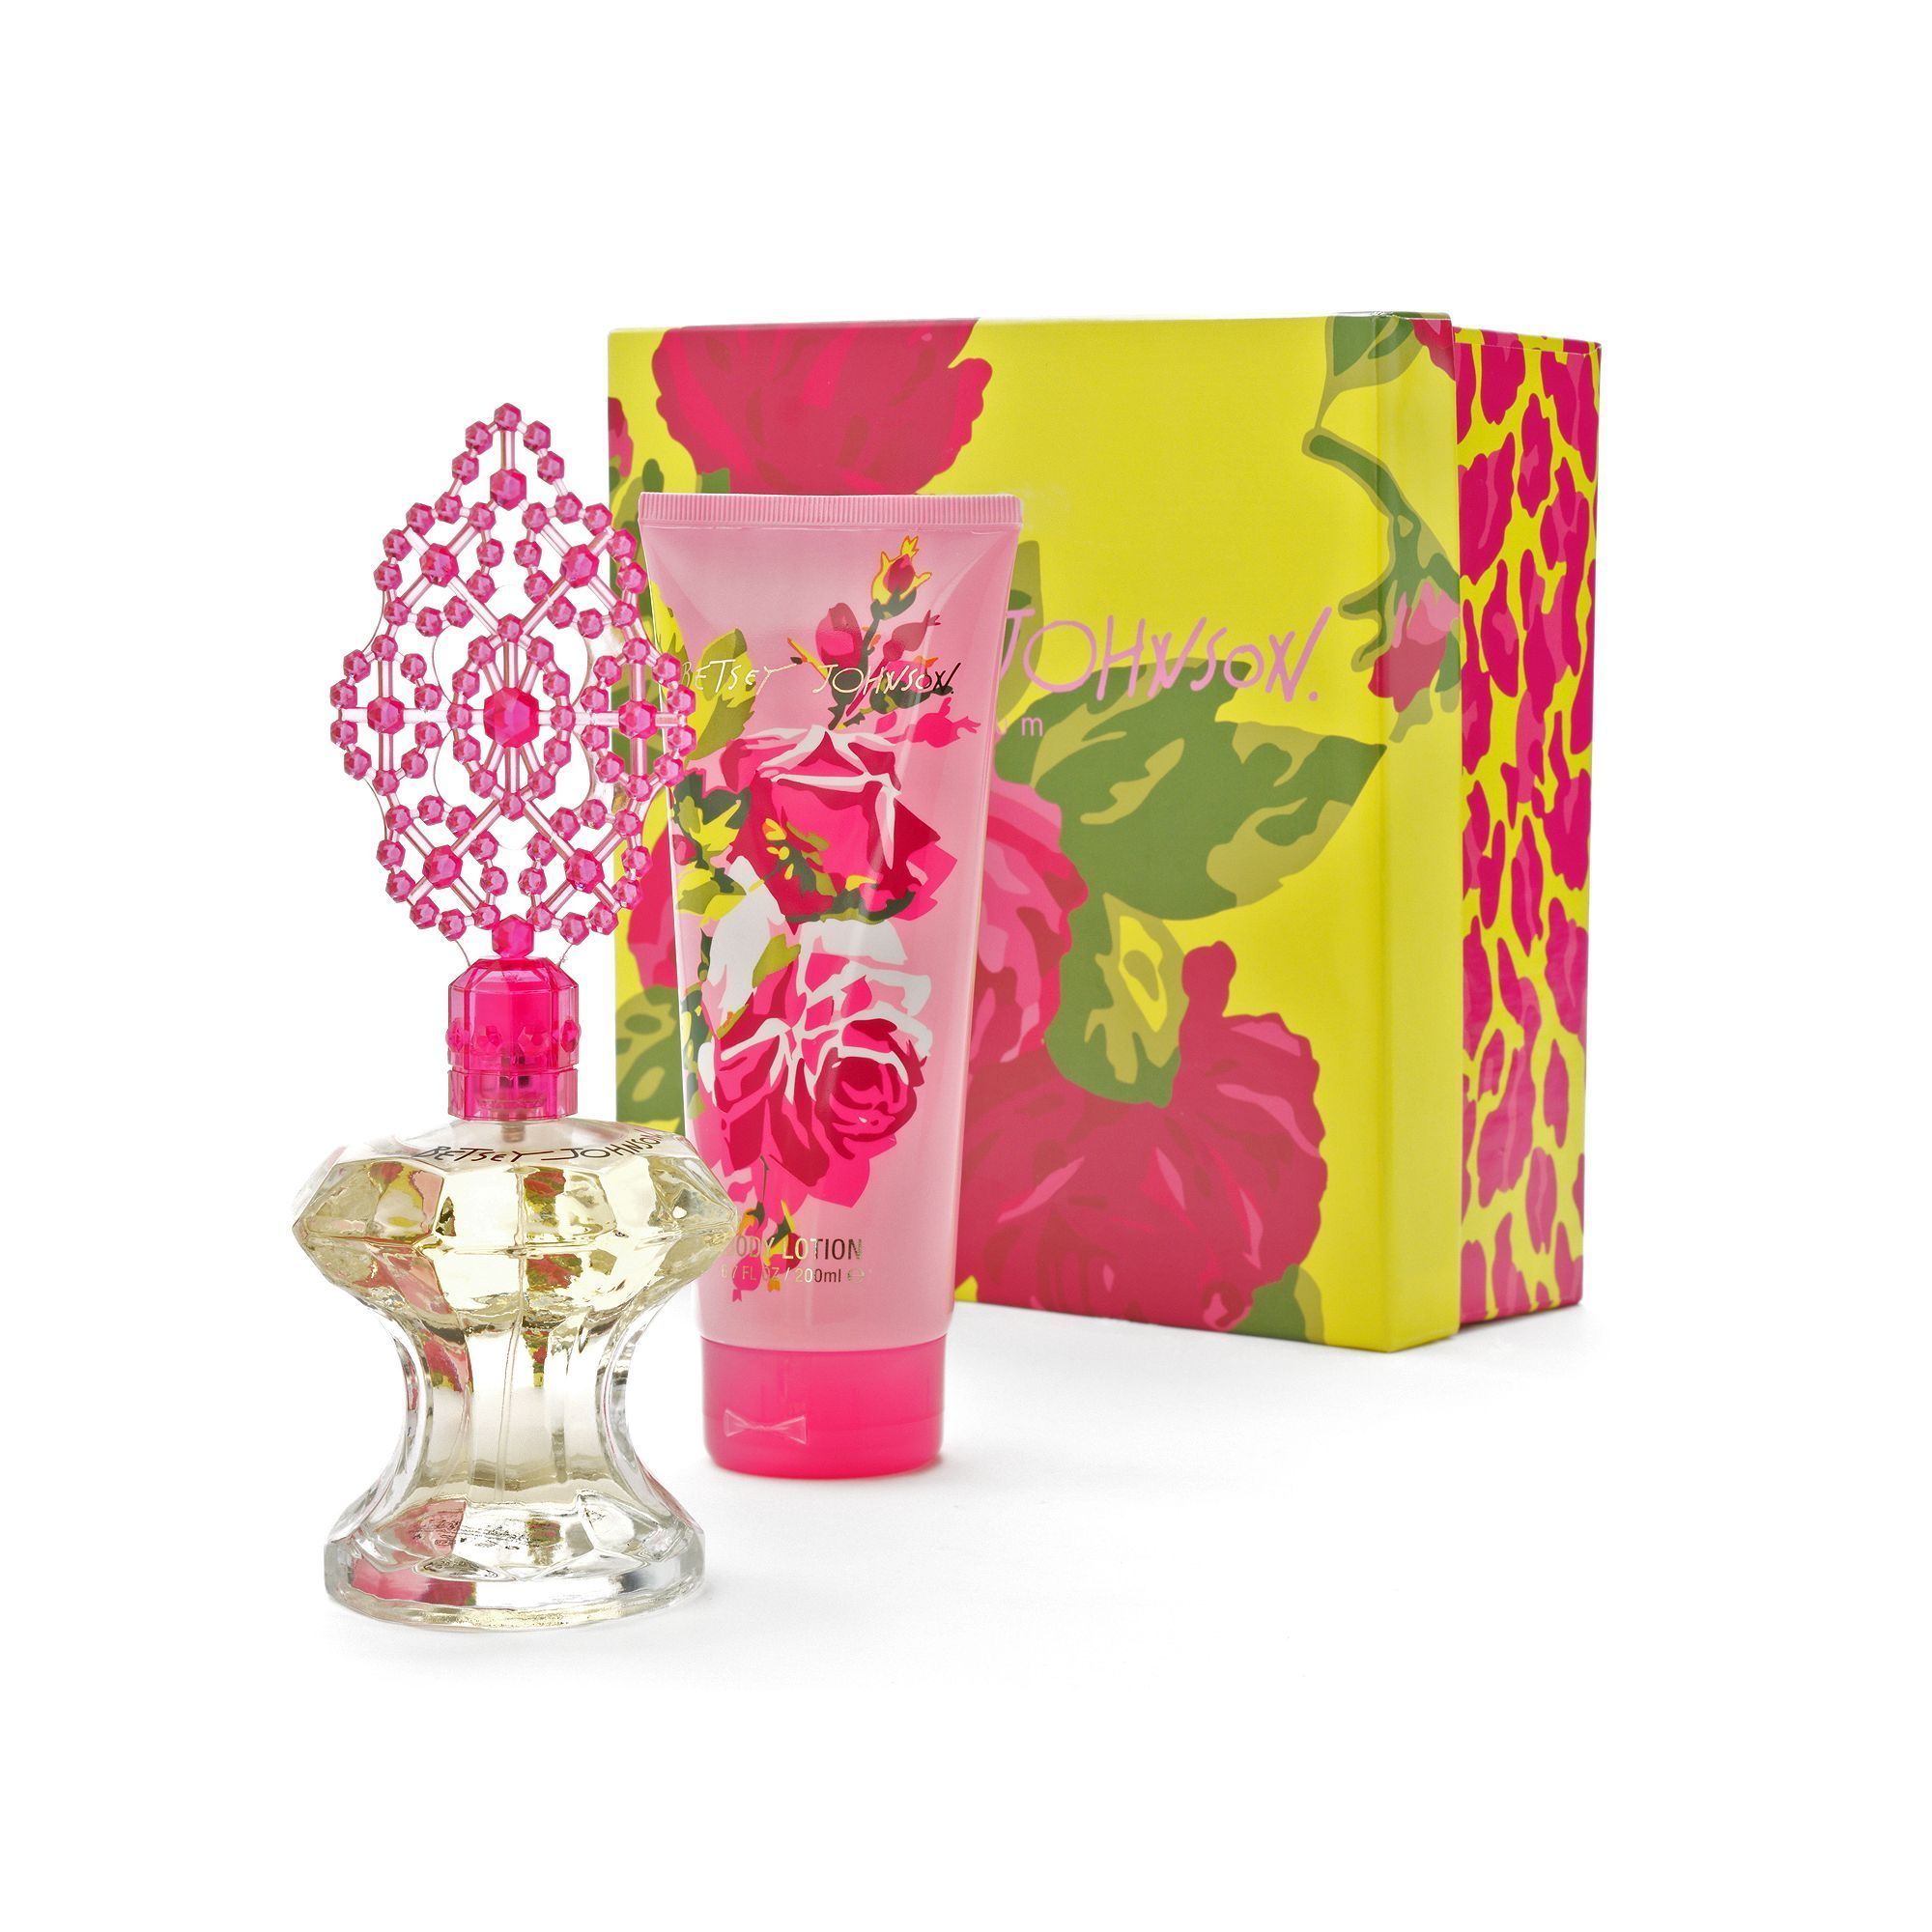 Betsey Johnson Women's Perfume Gift Set Betsey johnson